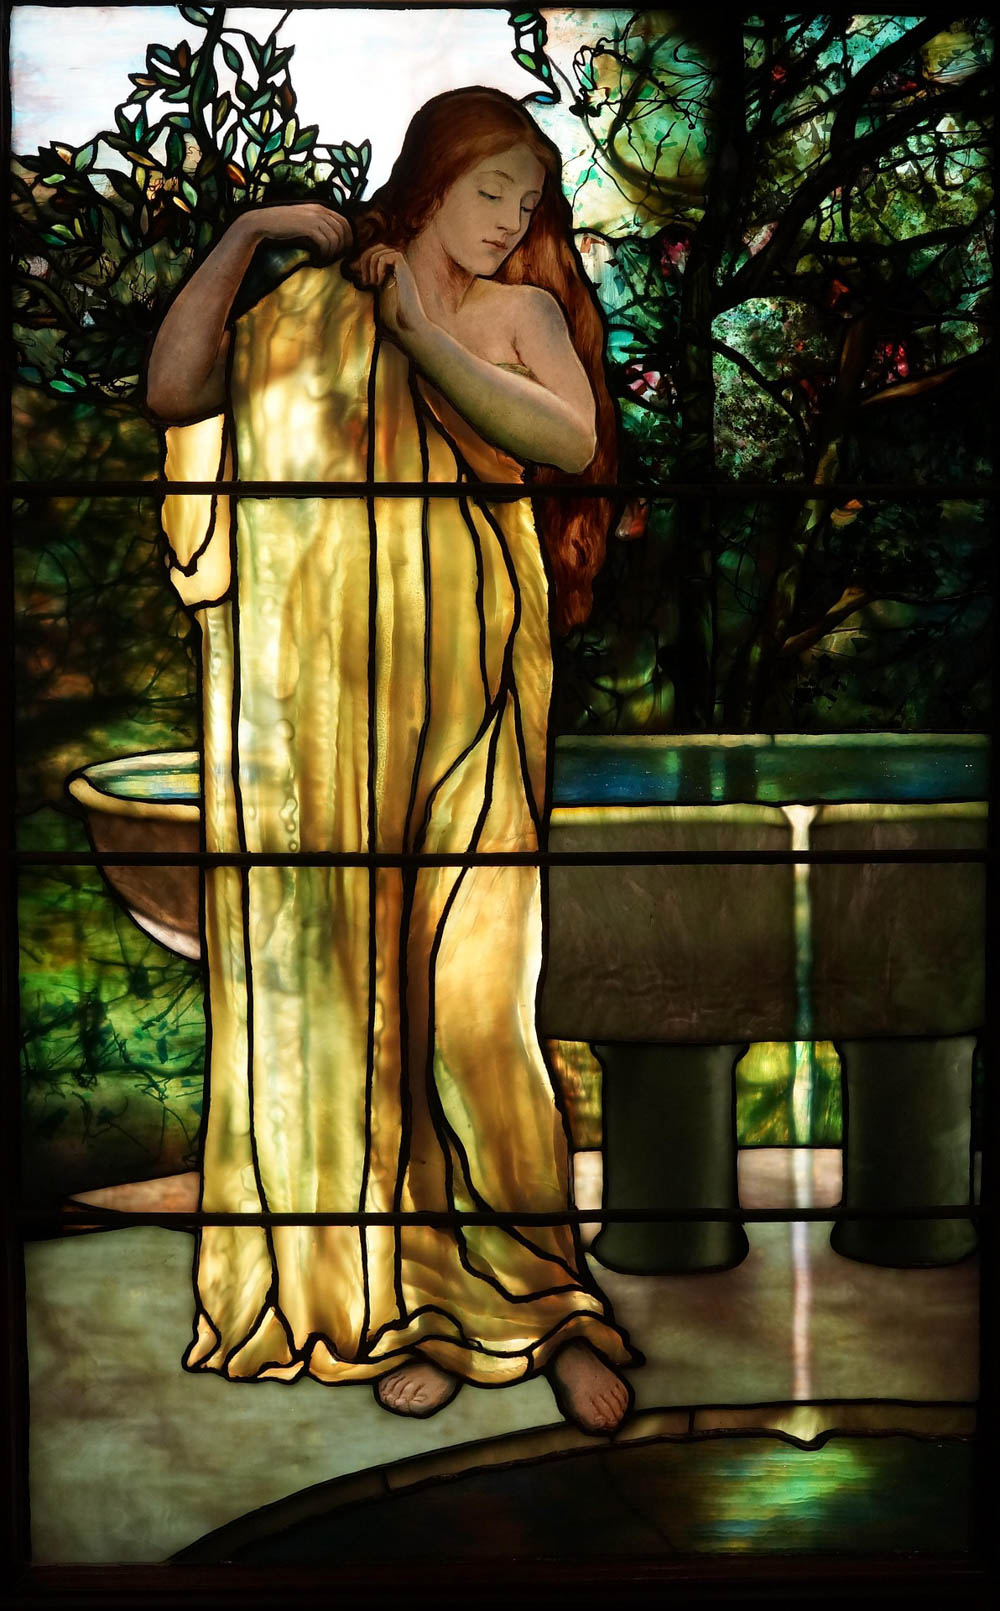 stained glass window of female figure - things to do in orlando besides theme parks